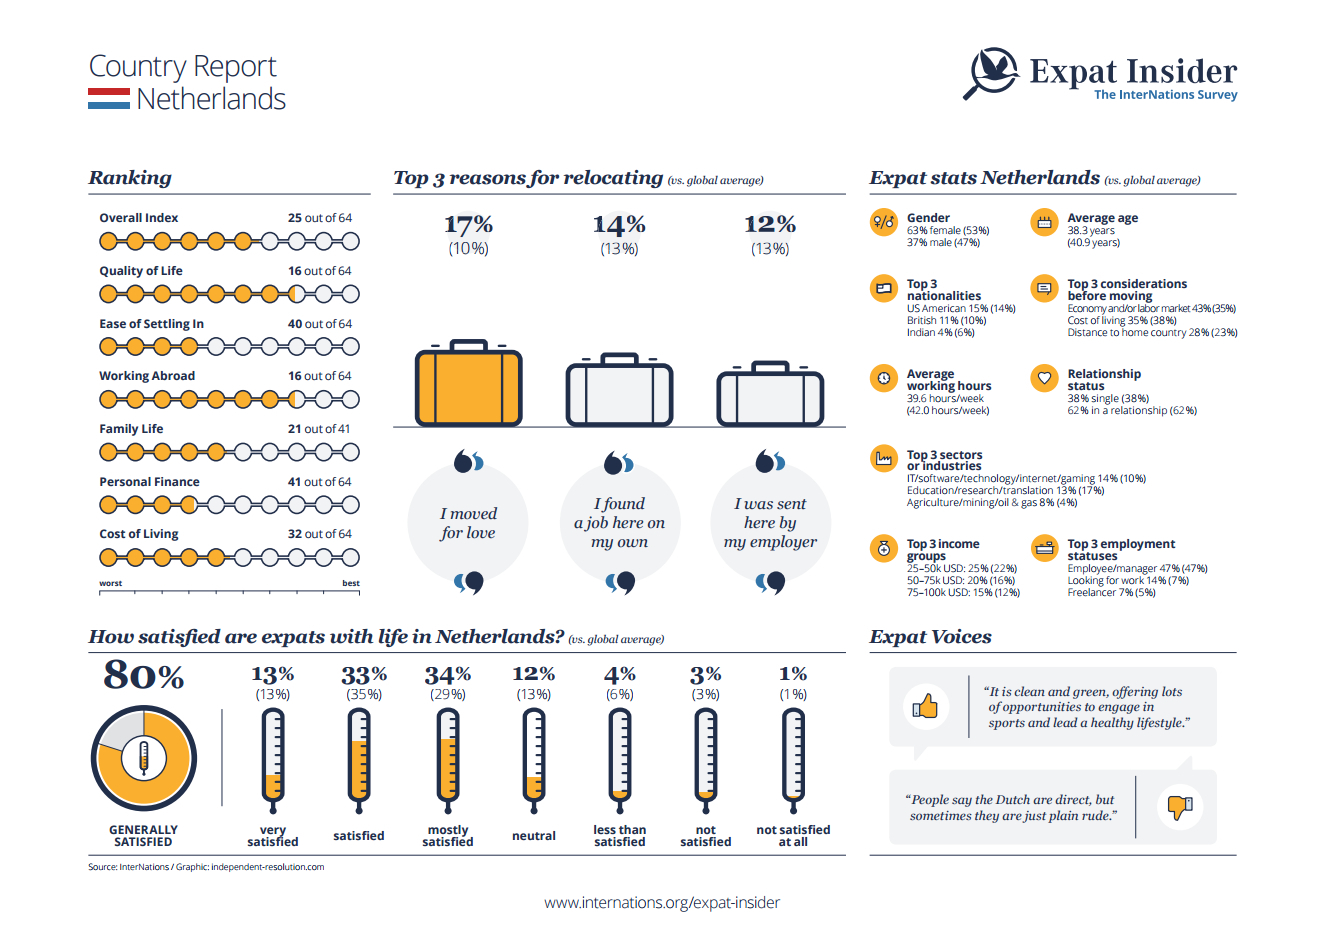 Expat statistics for the Netherlands - infographic